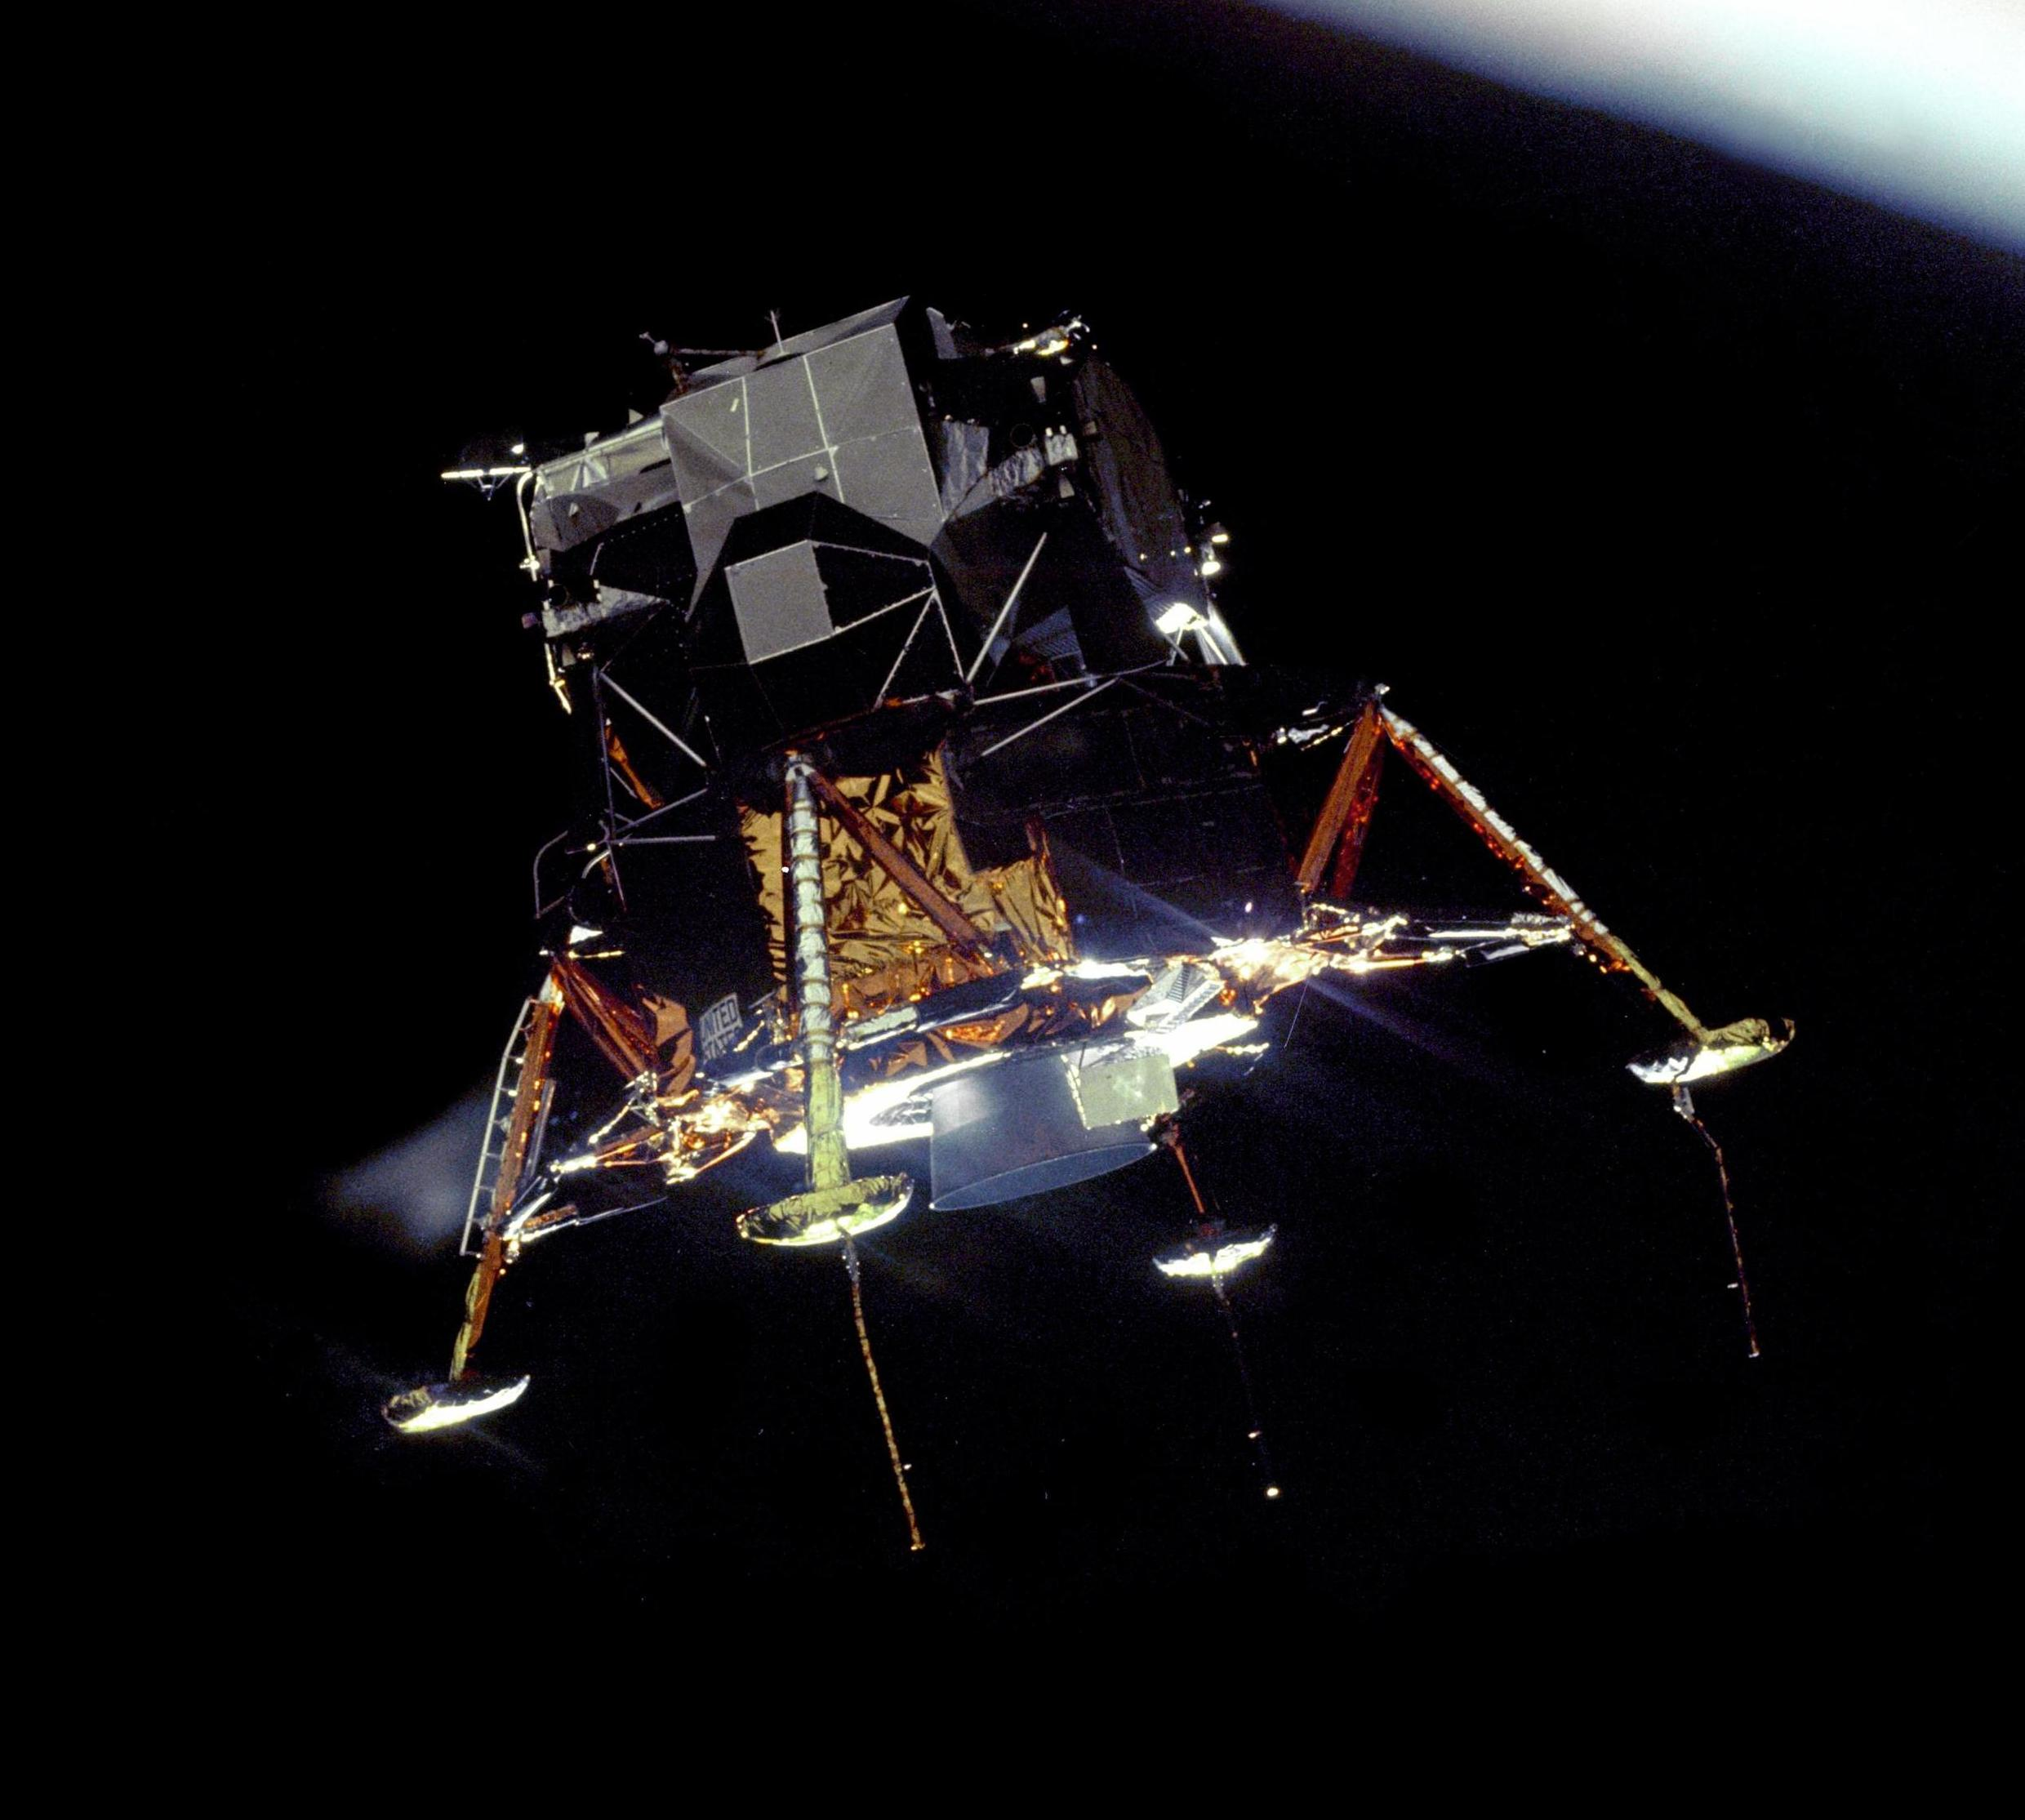 http://upload.wikimedia.org/wikipedia/commons/d/d5/Apollo_11_Lunar_Module_Eagle_in_landing_configuration_in_lunar_orbit_from_the_Command_and_Service_Module_Columbia.jpg - Quelle: WikiCommons